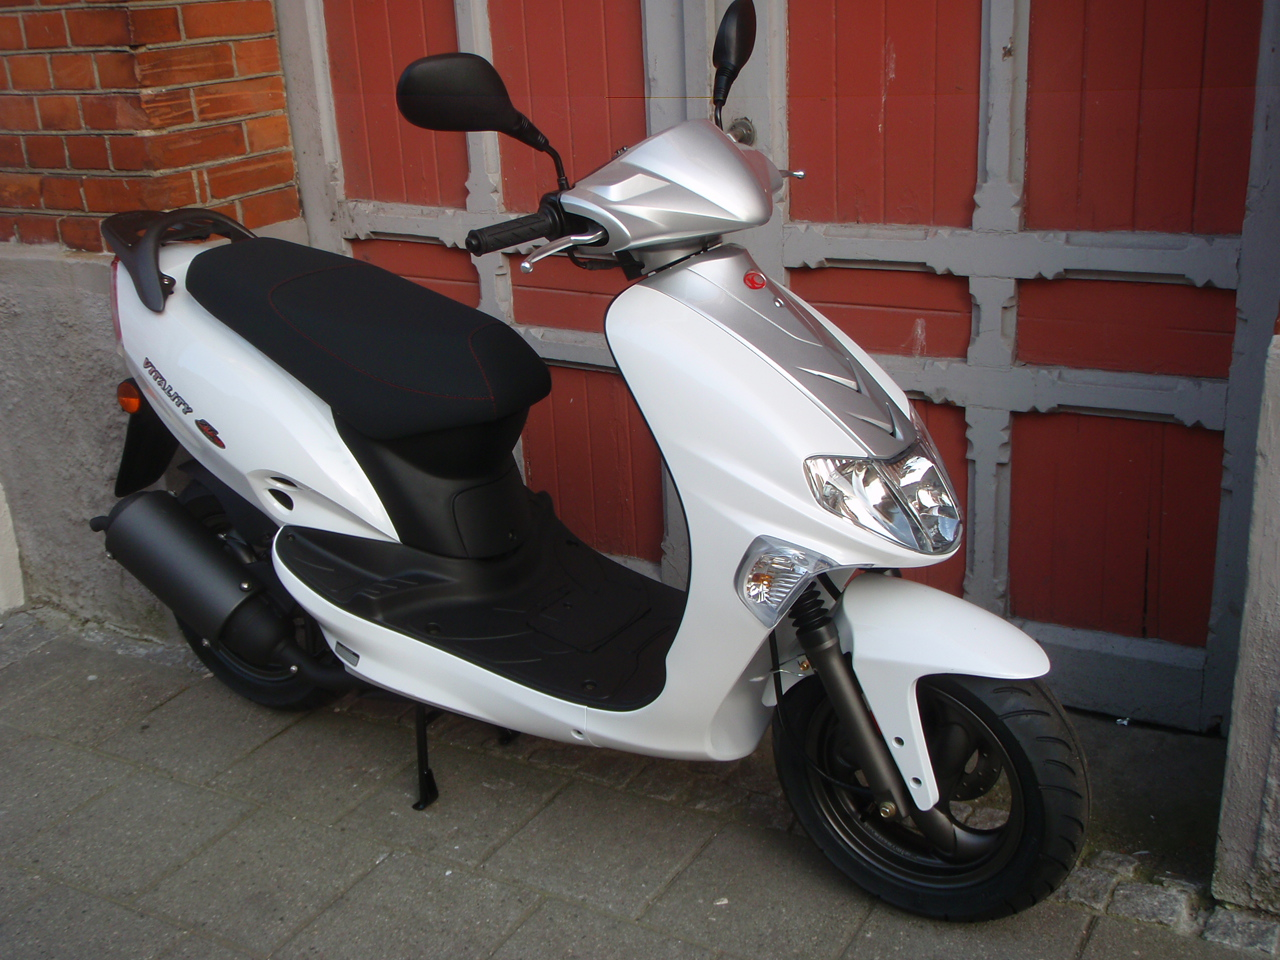 Moped verksted kristiansand